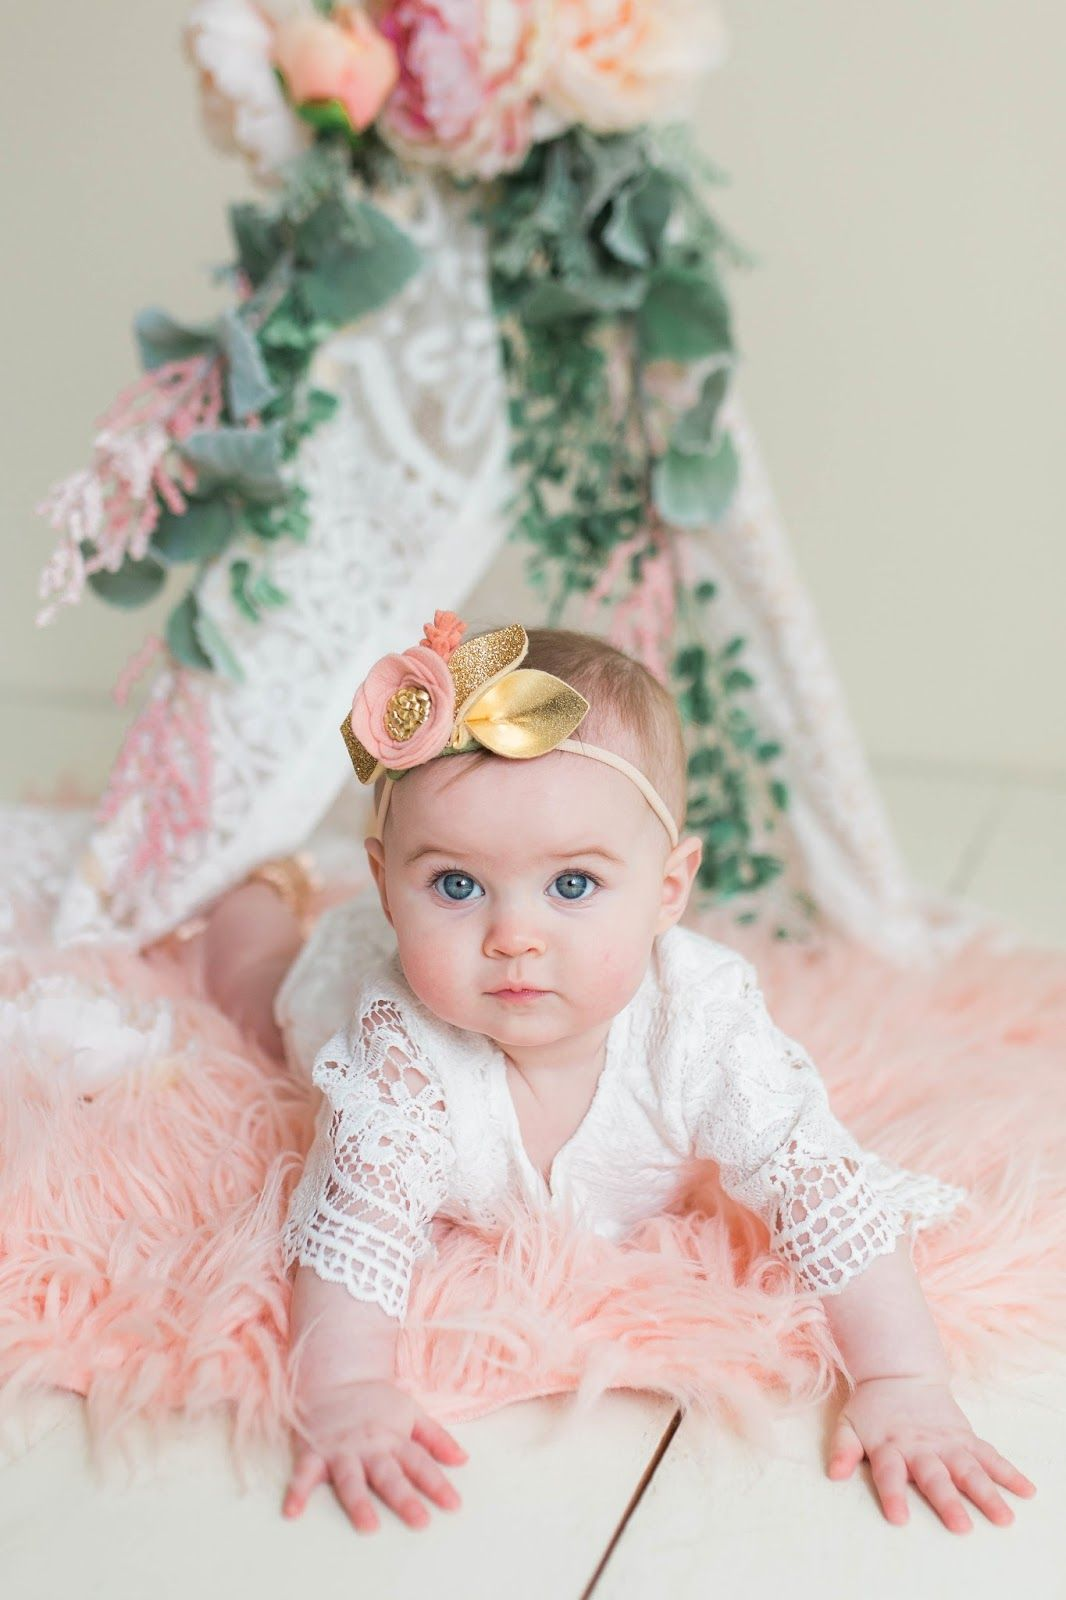 Blakely S 6 Month Old Pictures